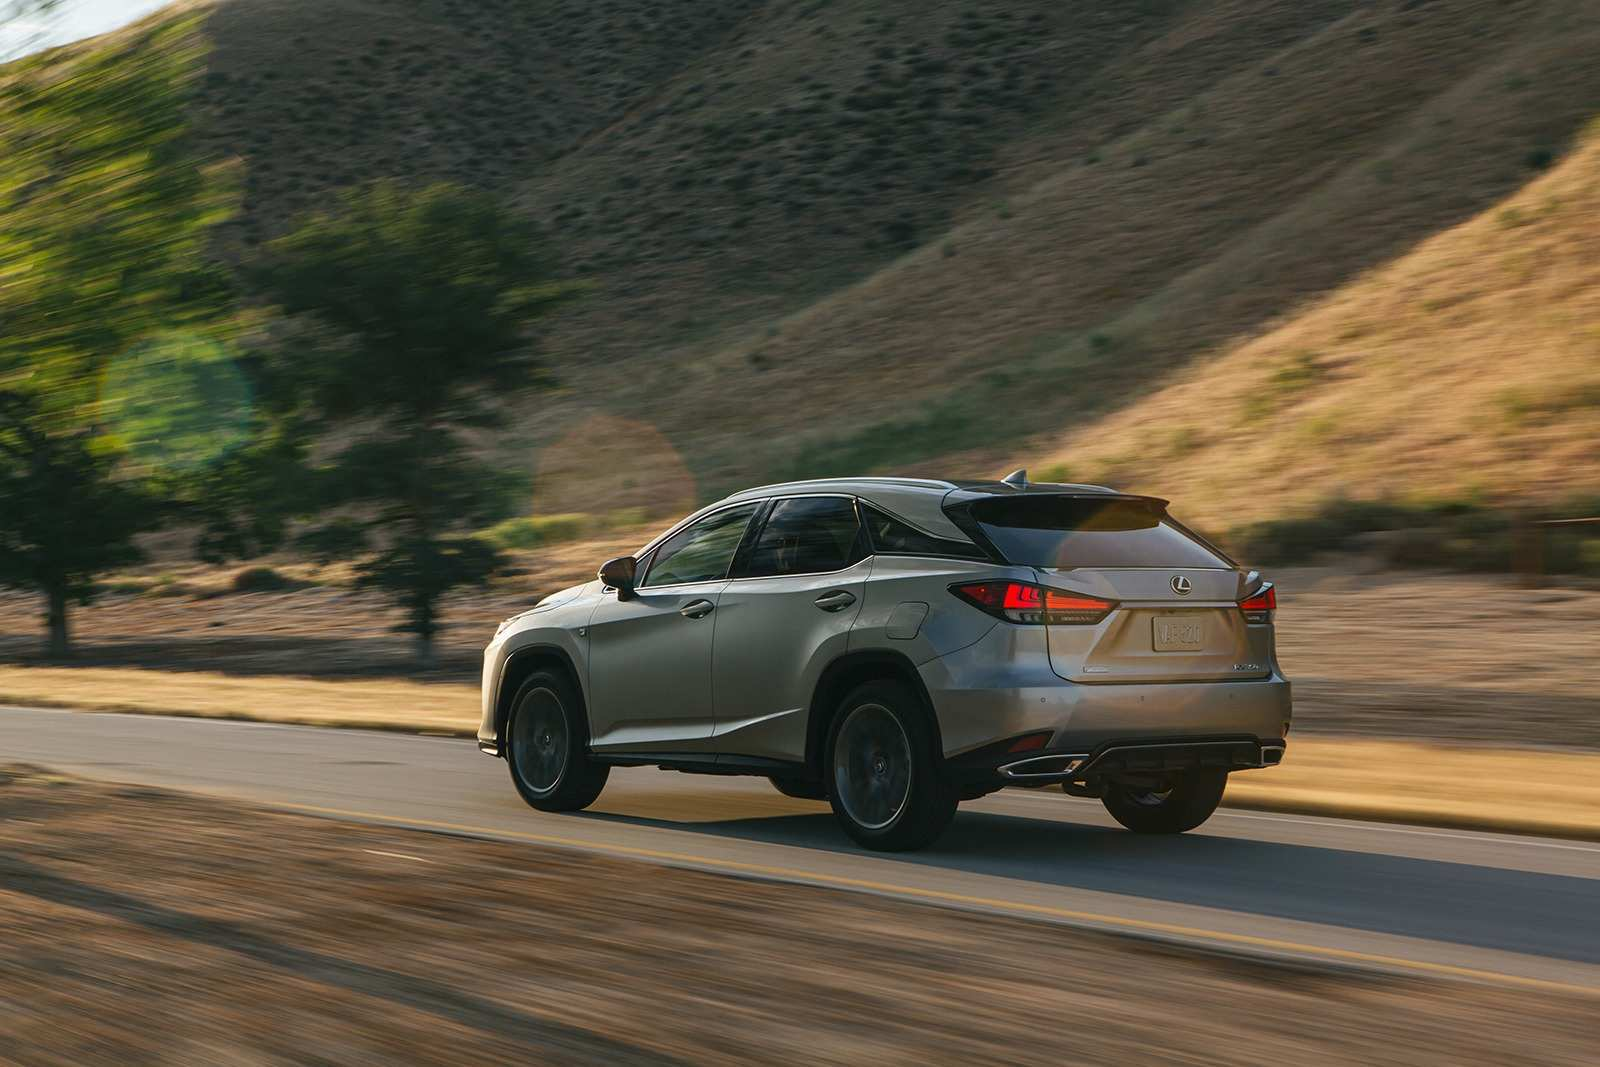 13 Best Review Lexus Rx 350 Year 2020 Picture with Lexus Rx 350 Year 2020